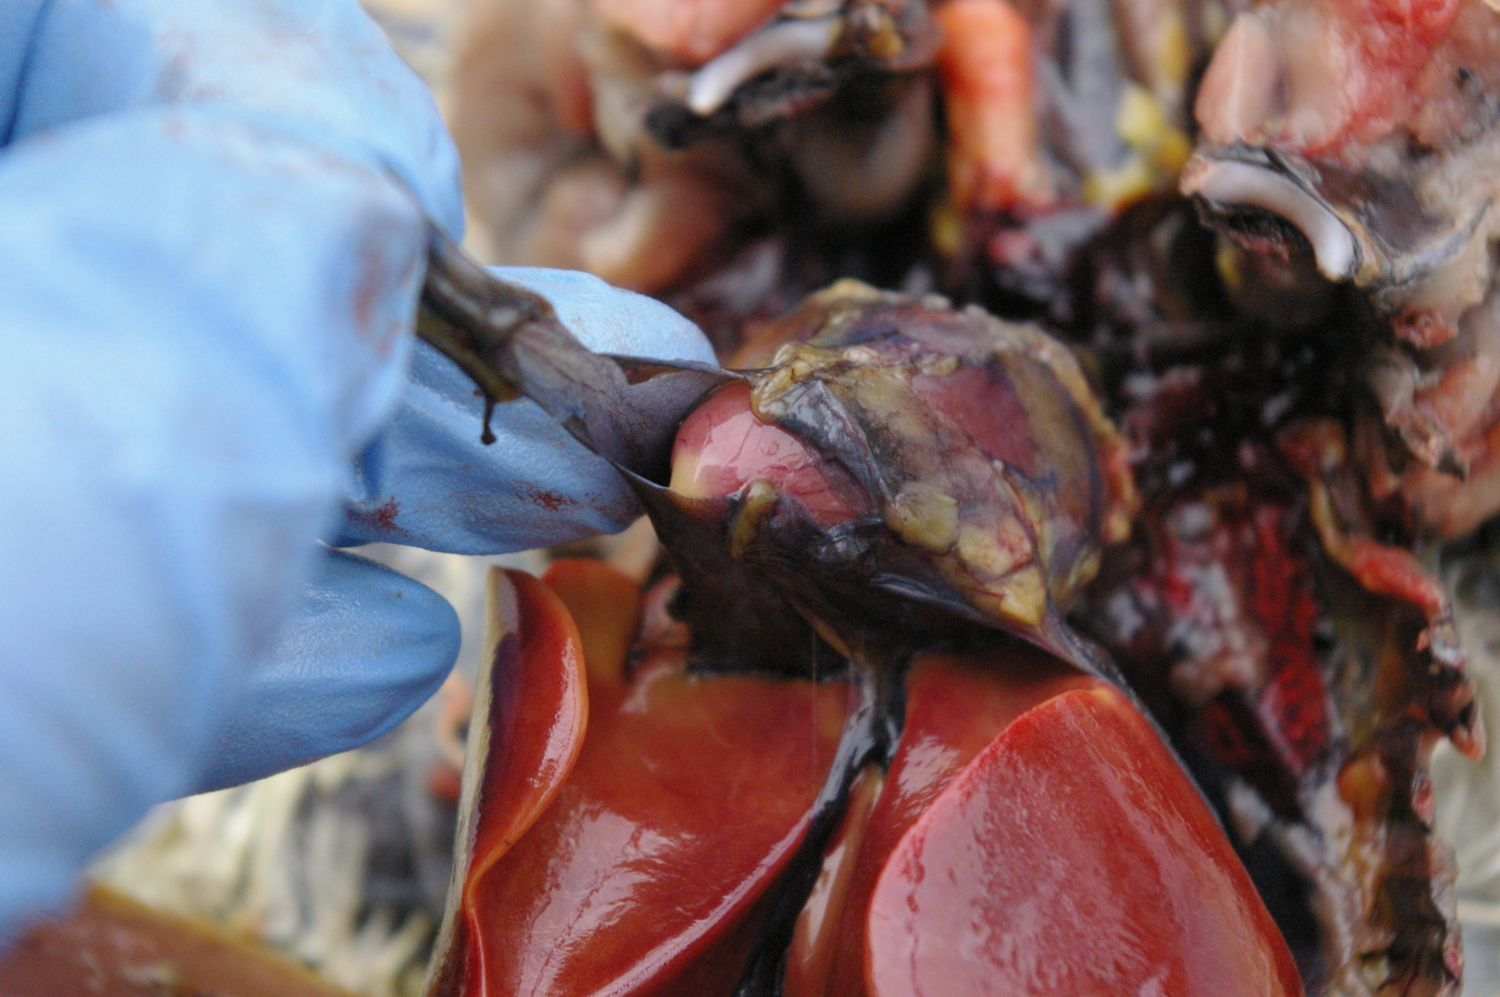 Heart sac cut to reveal the tip of the heart